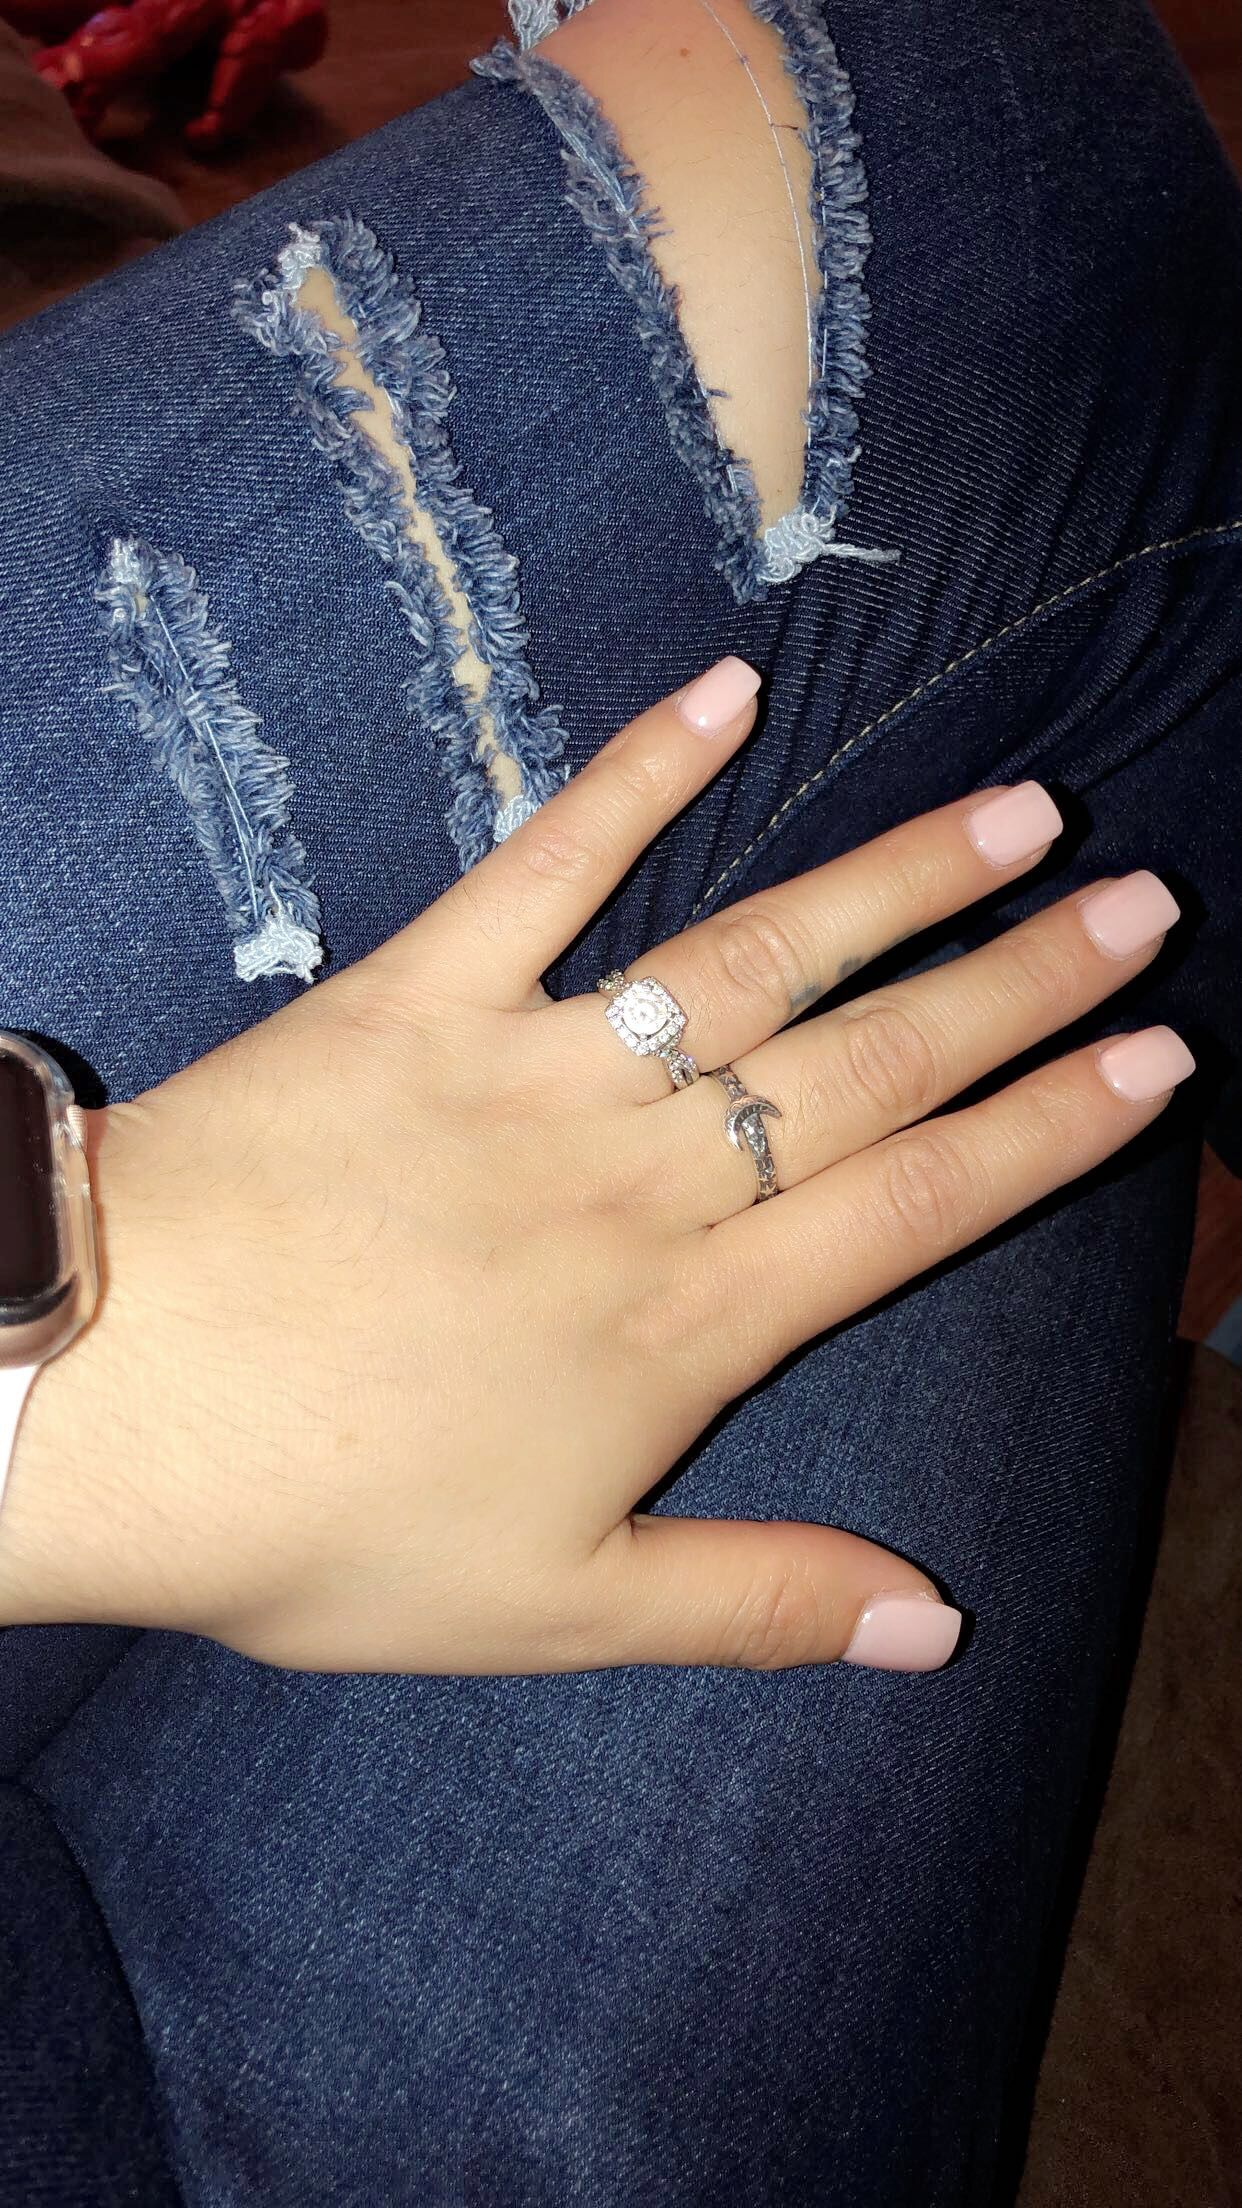 Short Square Nails Ripped Jeans Opi Bubble Bath Short Acrylic Nails Designs Short Square Nails Short Square Acrylic Nails